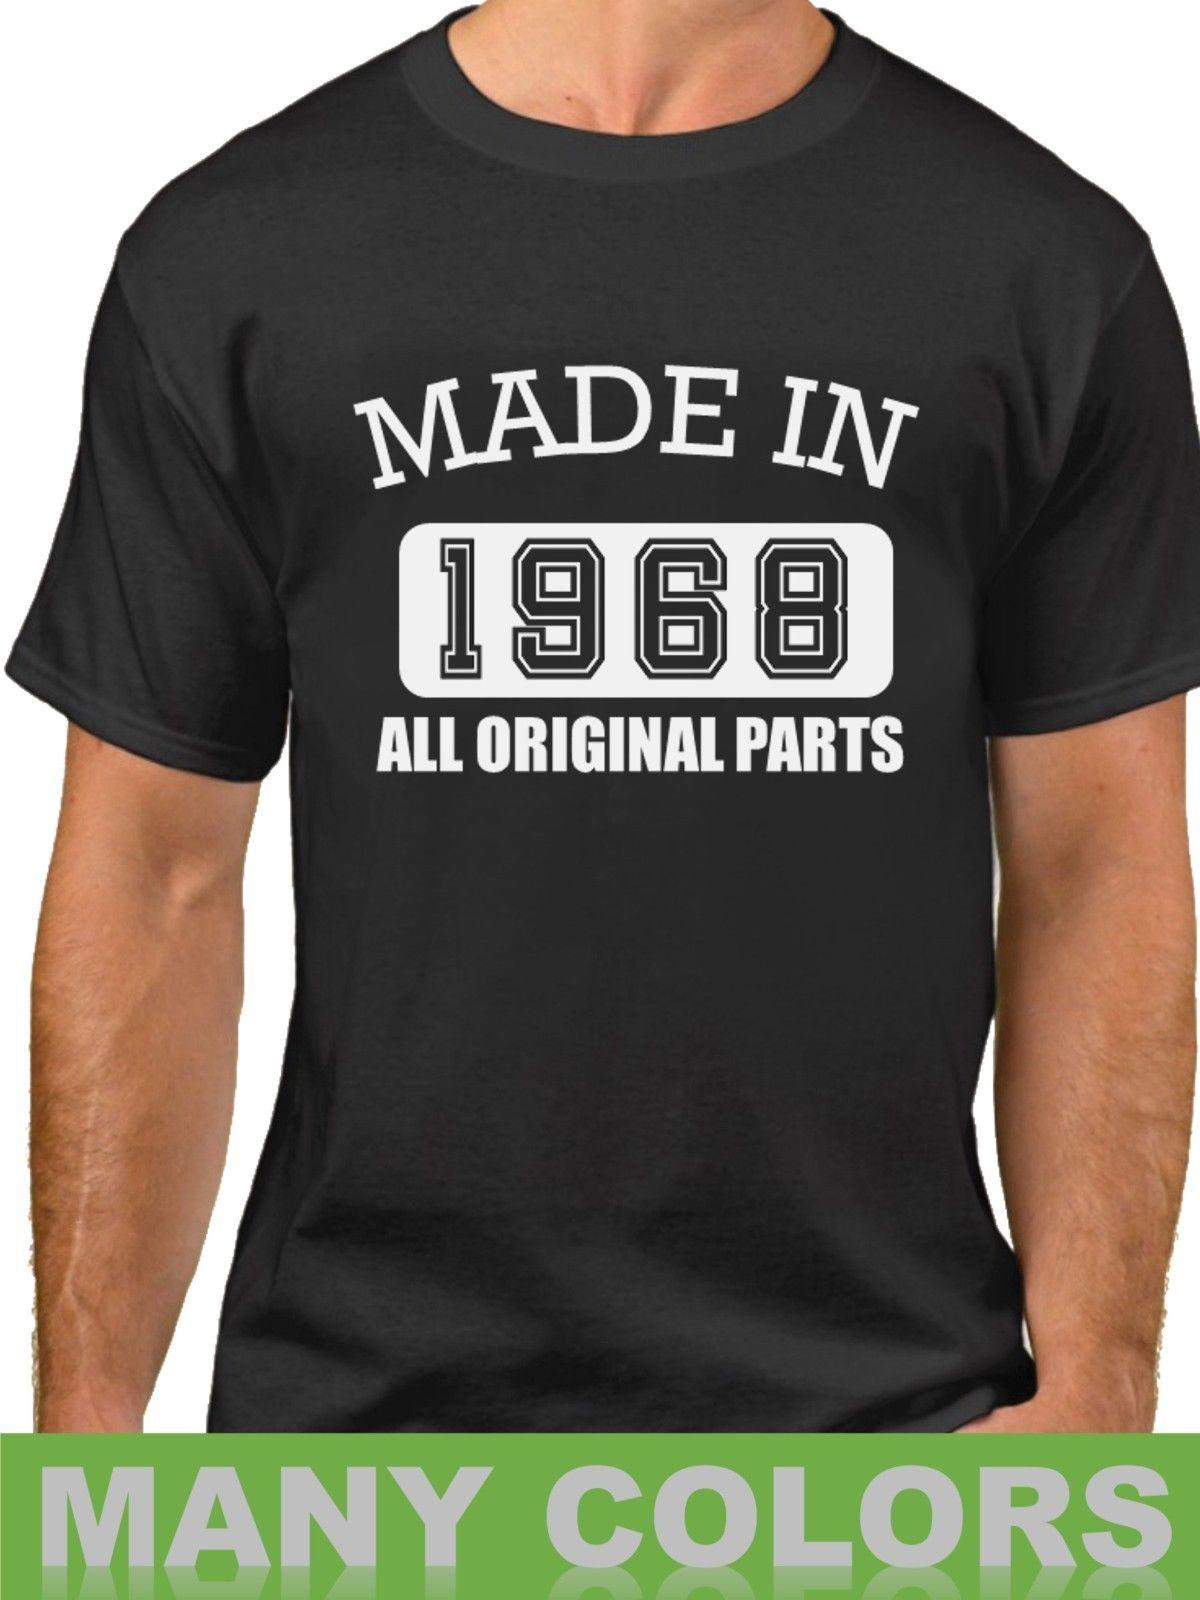 Details Zu Made In 1968 All Original Parts T Shirt 50 Years Of Being 50th Birthday Funny Unisex Tee Shirts Design Online From Stshirt